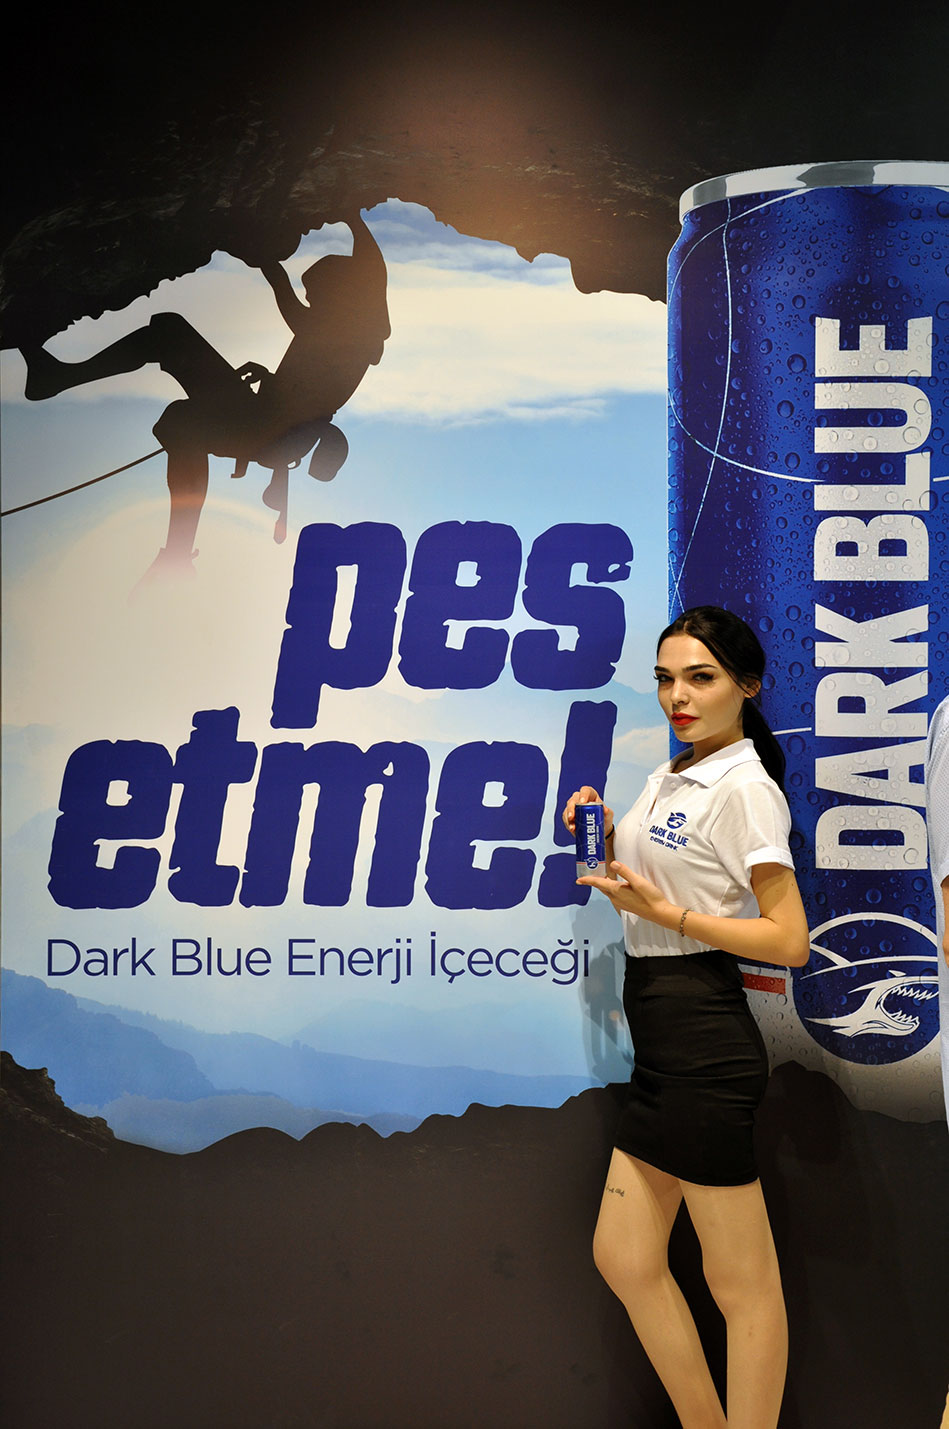 Dark Blue Energy Drink